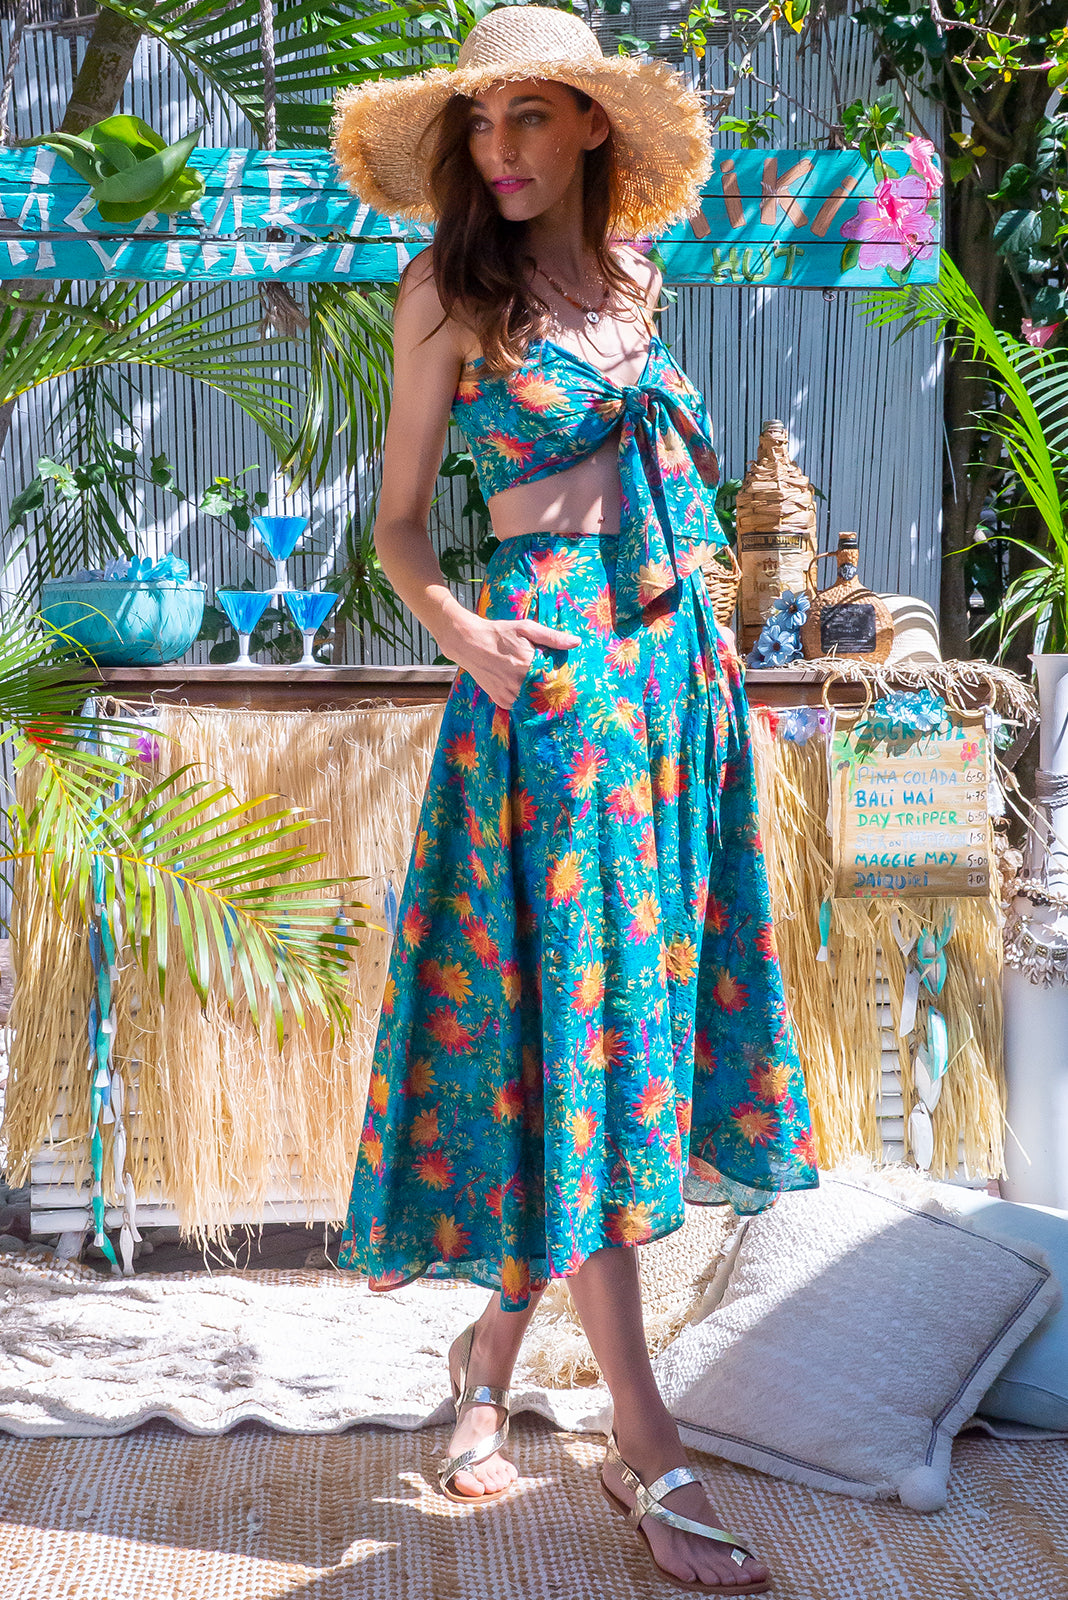 The Toucana Teal Sunshine Warp Skirt is functional wrap around design featuring elasticated back of waist, side pockets and 60% cotton, 40% viscose in retro, abstract flower print on teal wash effect base.